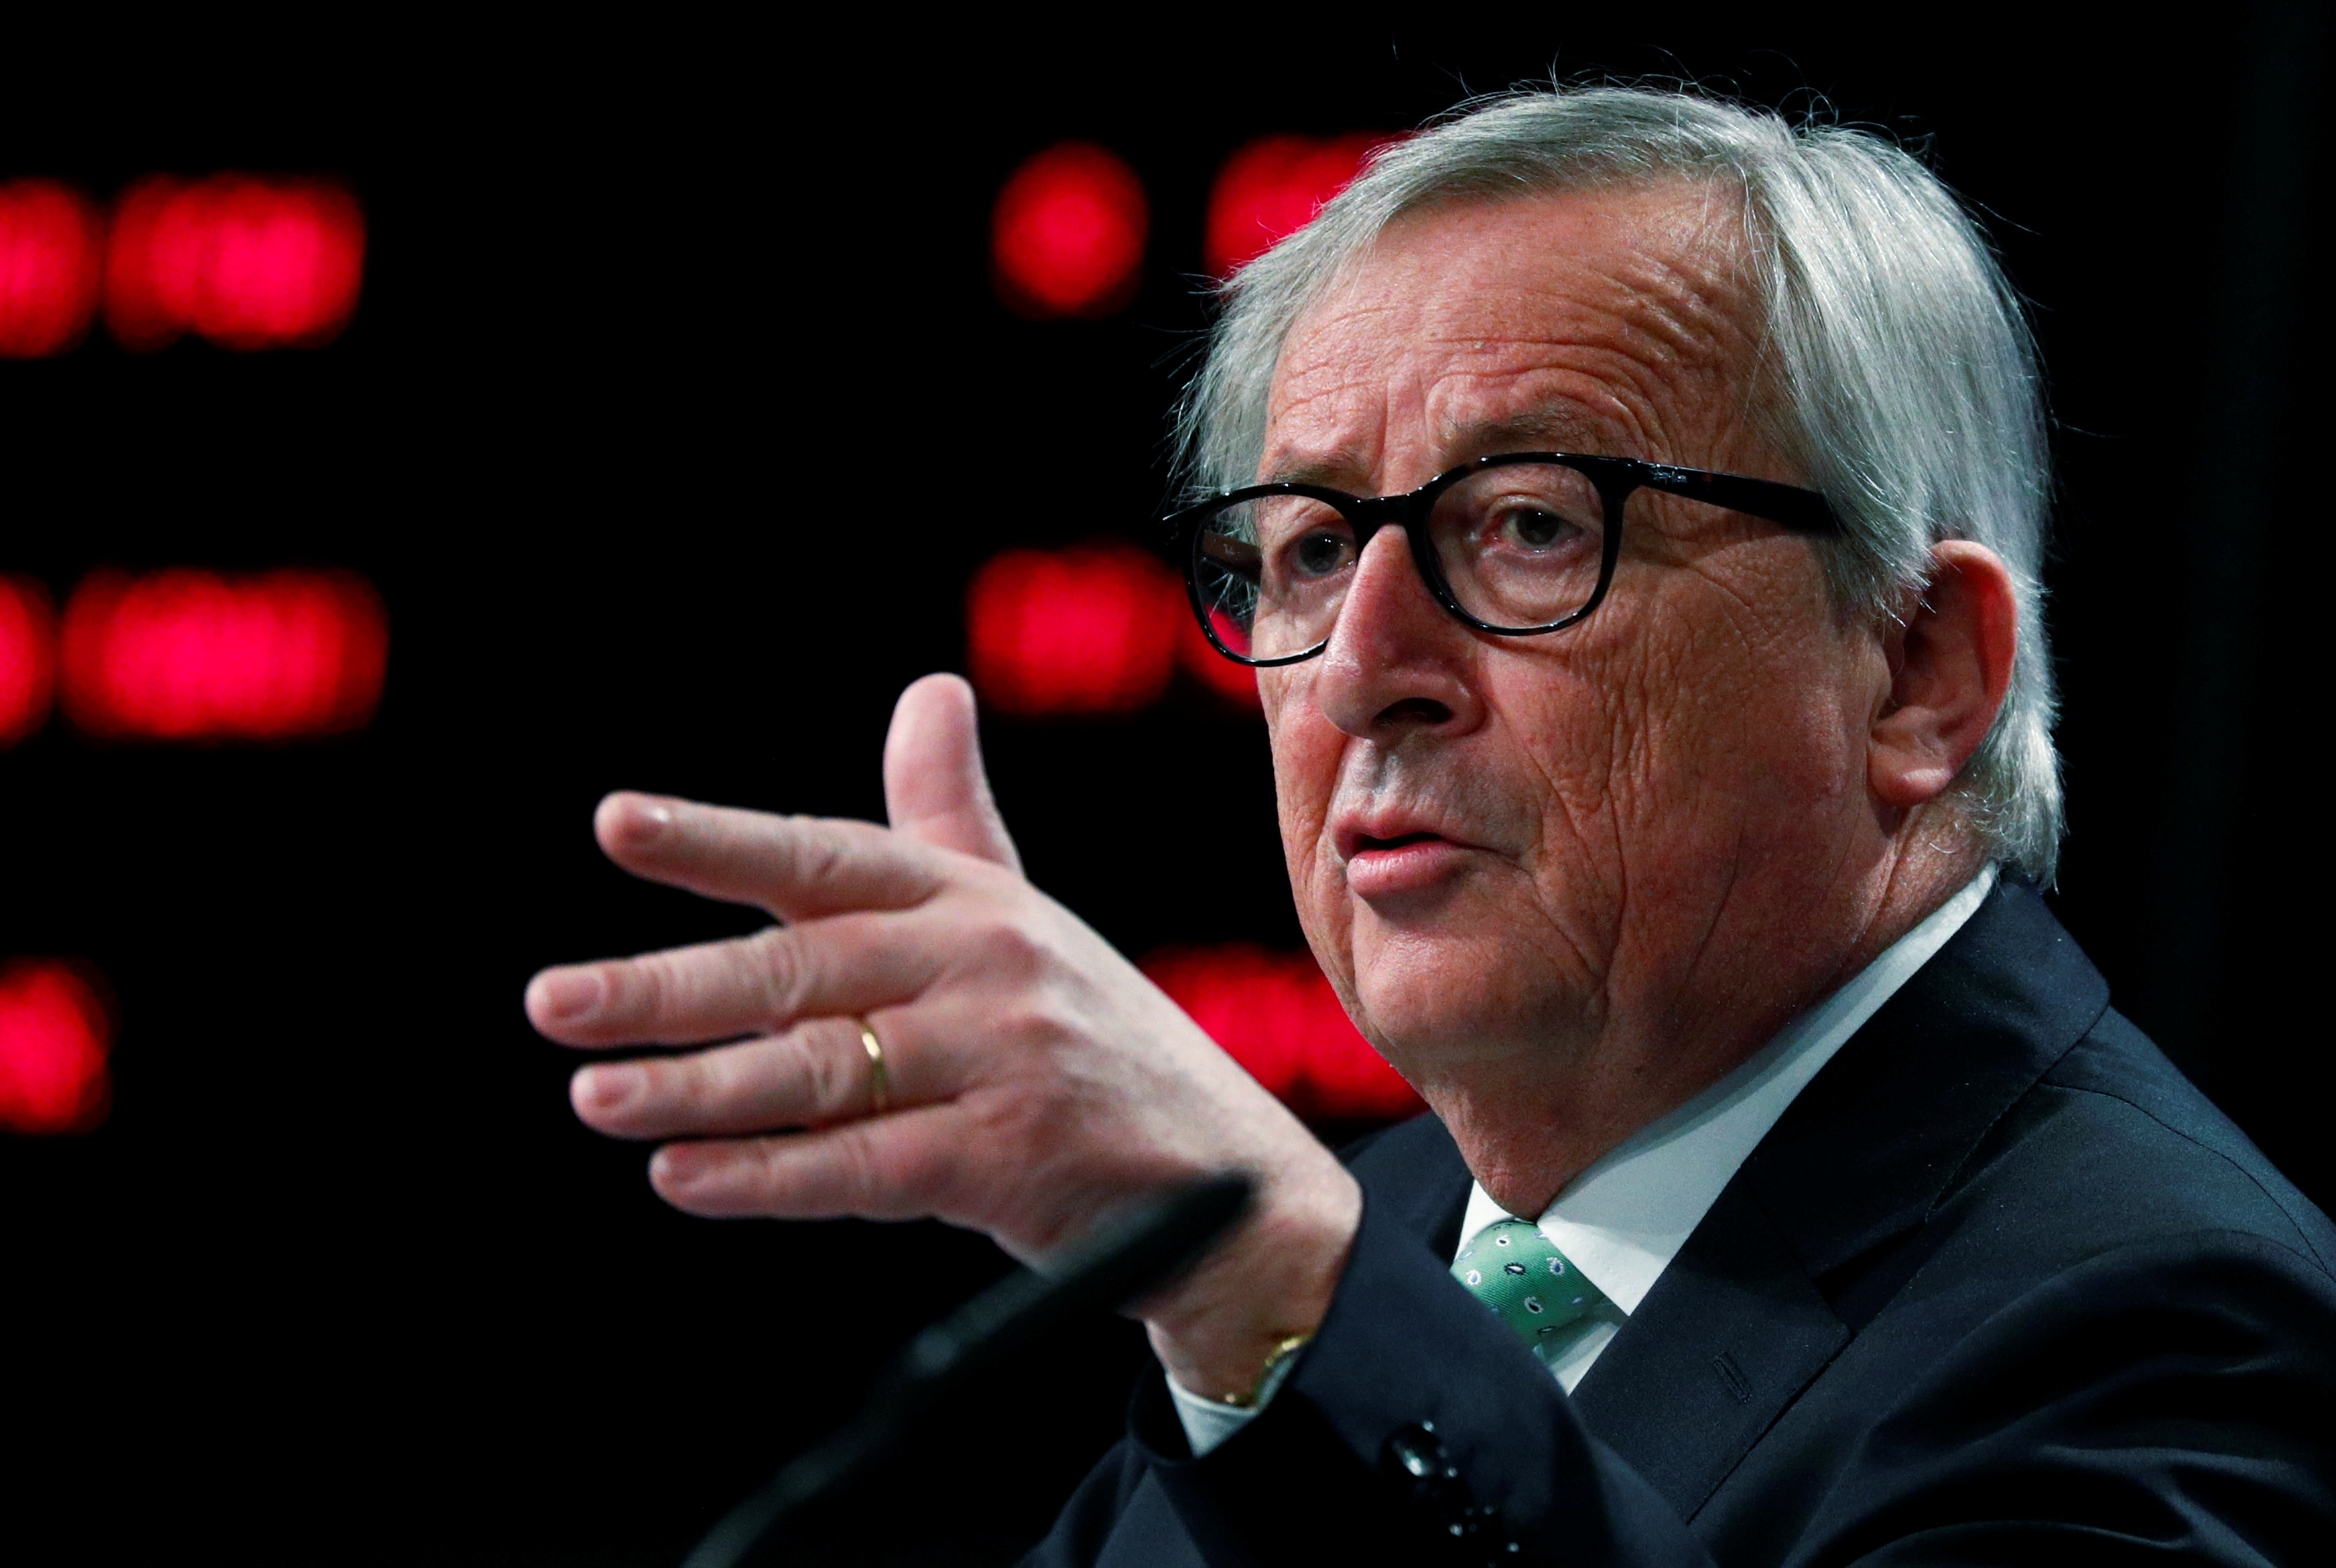 European Commission President Jean-Claude Juncker holds a news conference at the EU Commission headquarters ahead of an informal meeting of EU leaders, Brussels, Belgium, May 7, 2019.